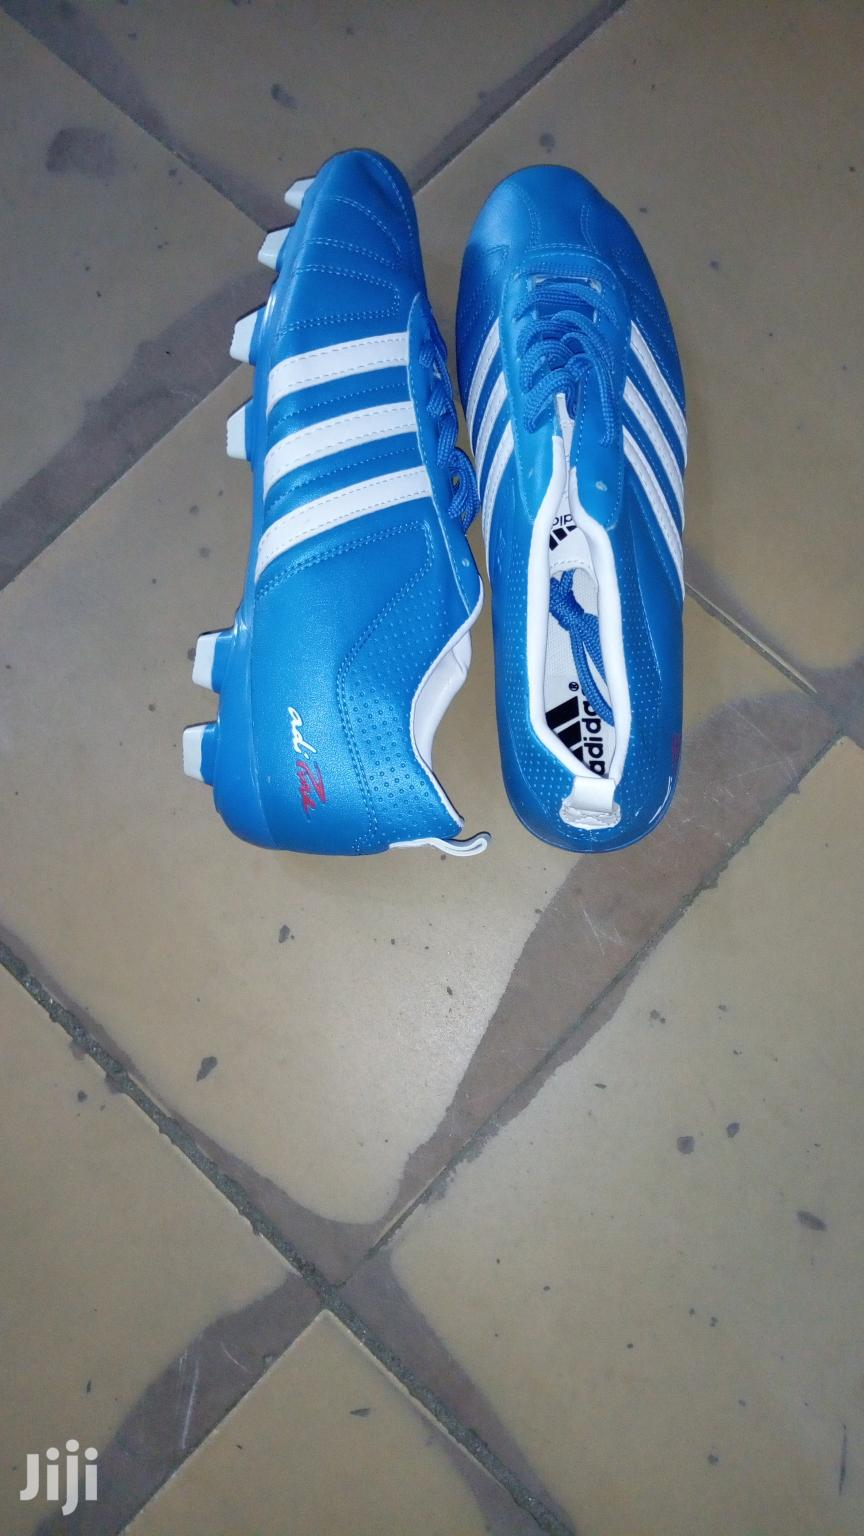 Original Adidas Football Boot | Shoes for sale in Warri, Delta State, Nigeria